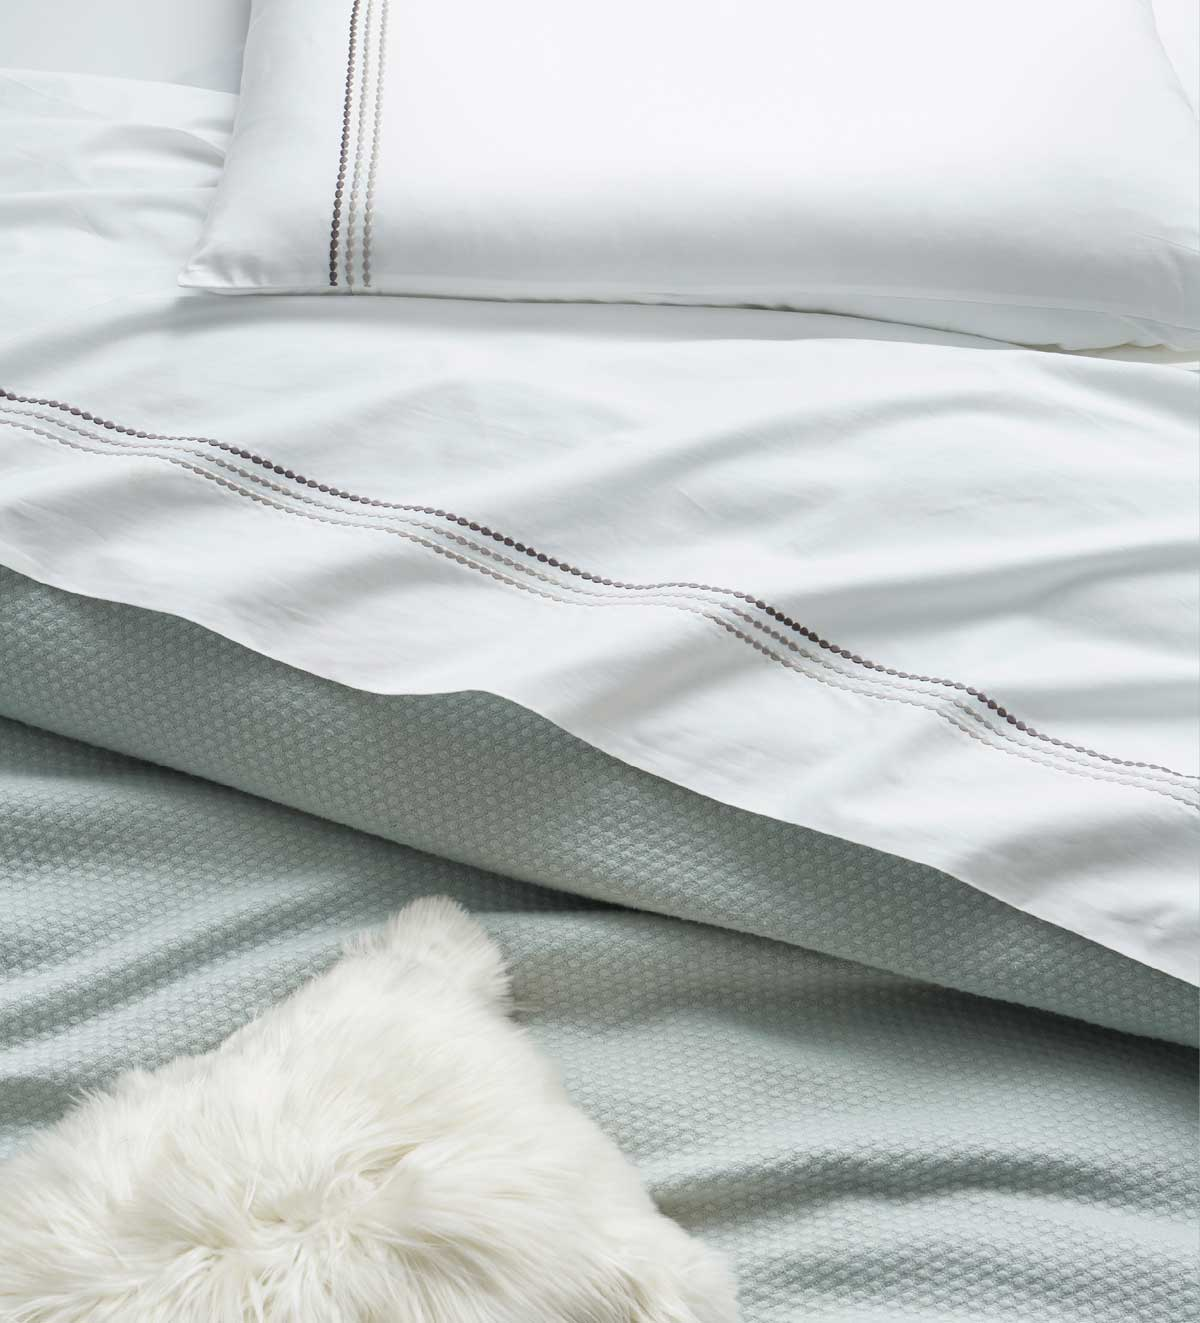 Dreamy Details - Dress the bed in calming hues and luxurious layers